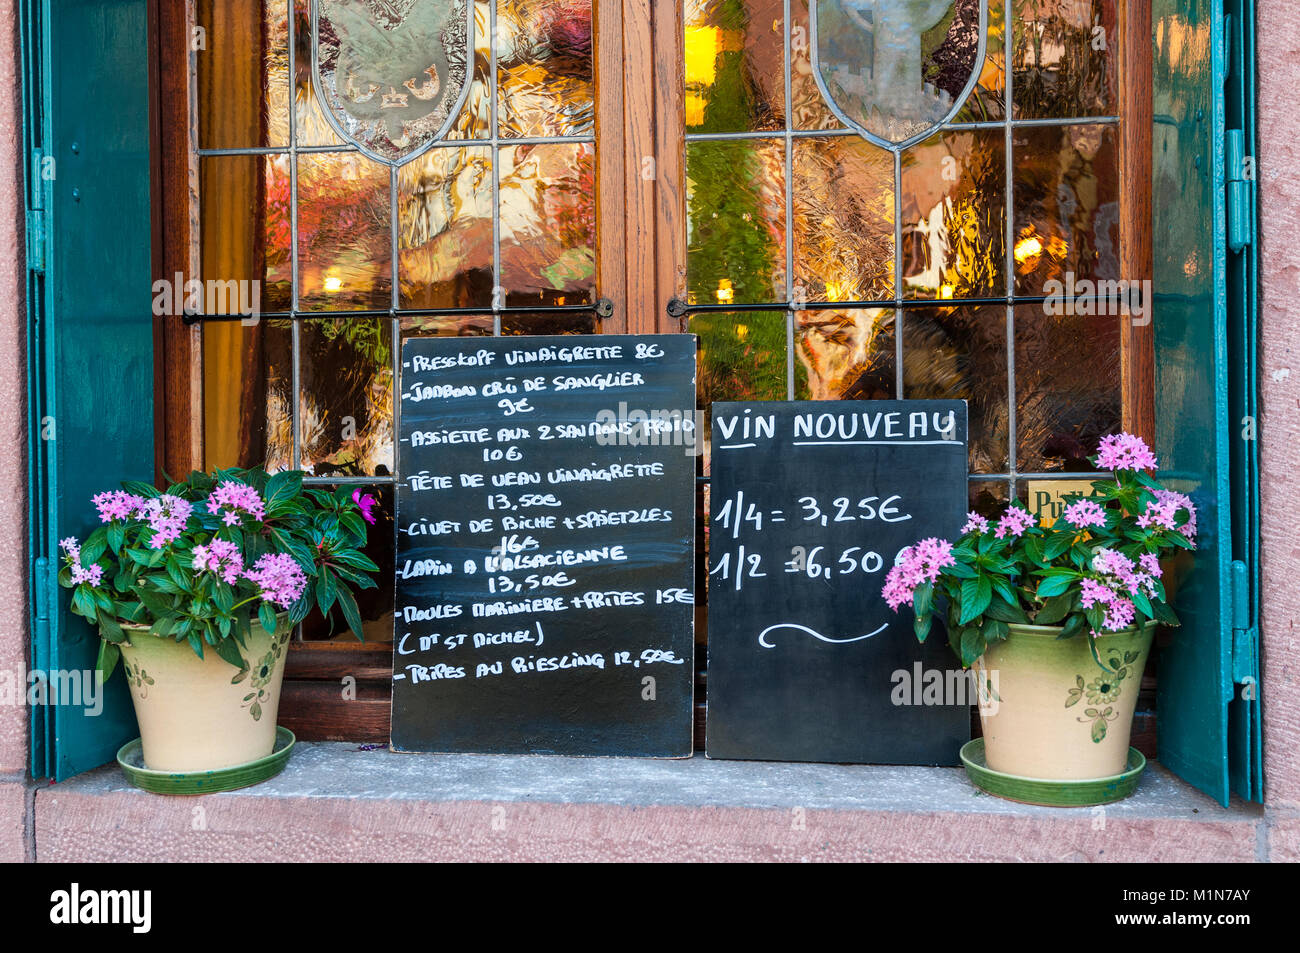 ALSACE FRANCE Blackboard menus displaying local specialties and vin nouveau outside typical inexpensive Alsace restaurant - Stock Image